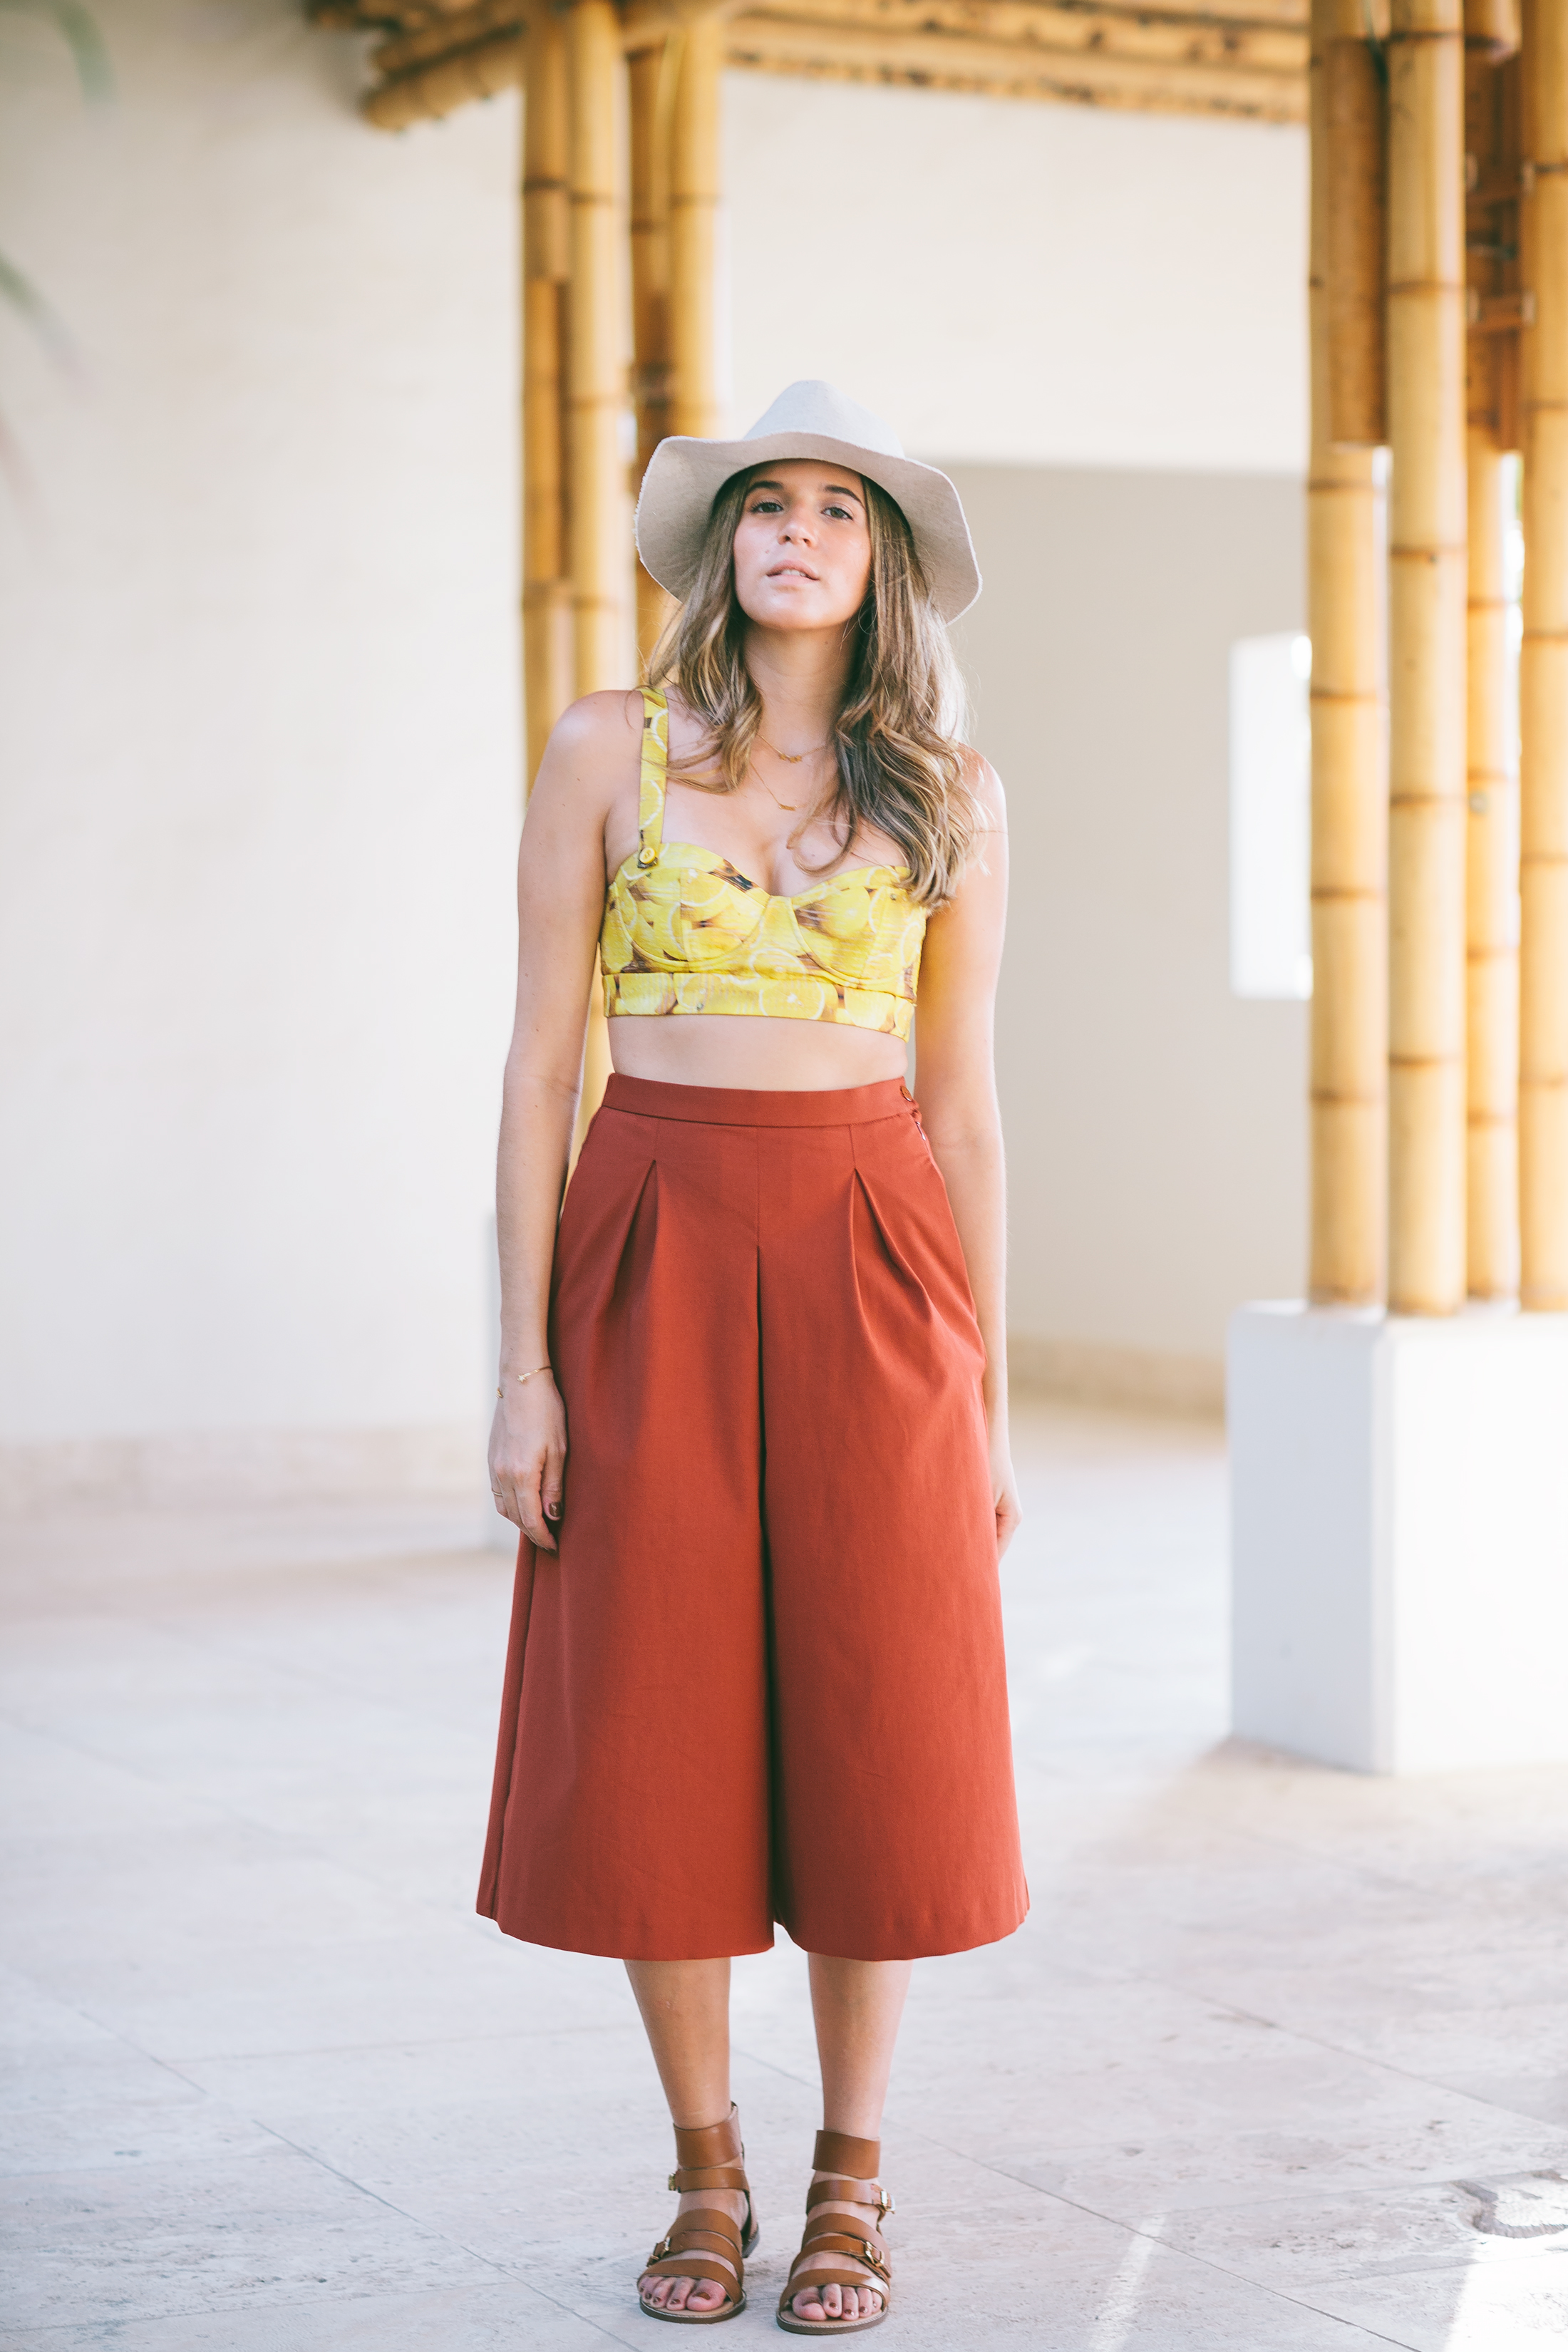 Culottes + Crop Top Outfit Ideas - Outfit Ideas HQ